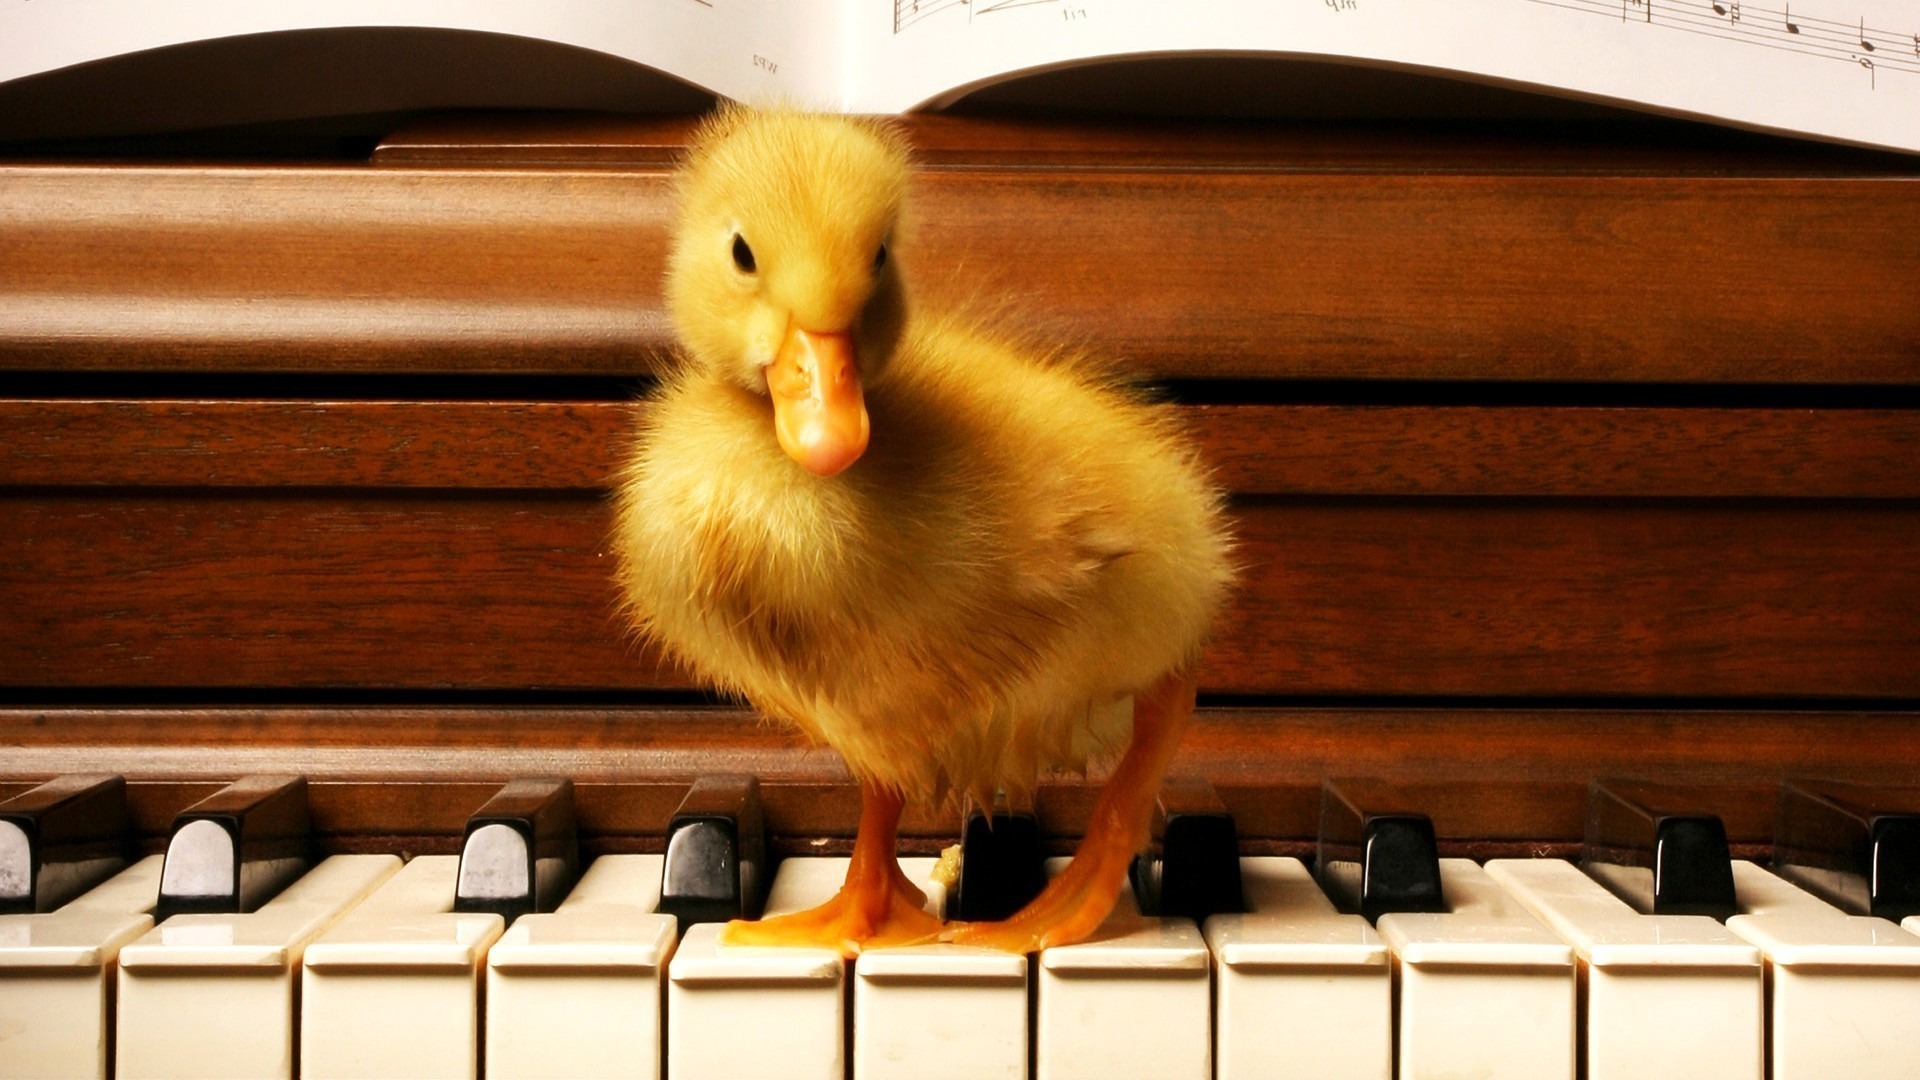 Res: 1920x1080, wood, Duck, Old Building, Piano, Birds, Baby Animals Wallpapers HD /  Desktop and Mobile Backgrounds